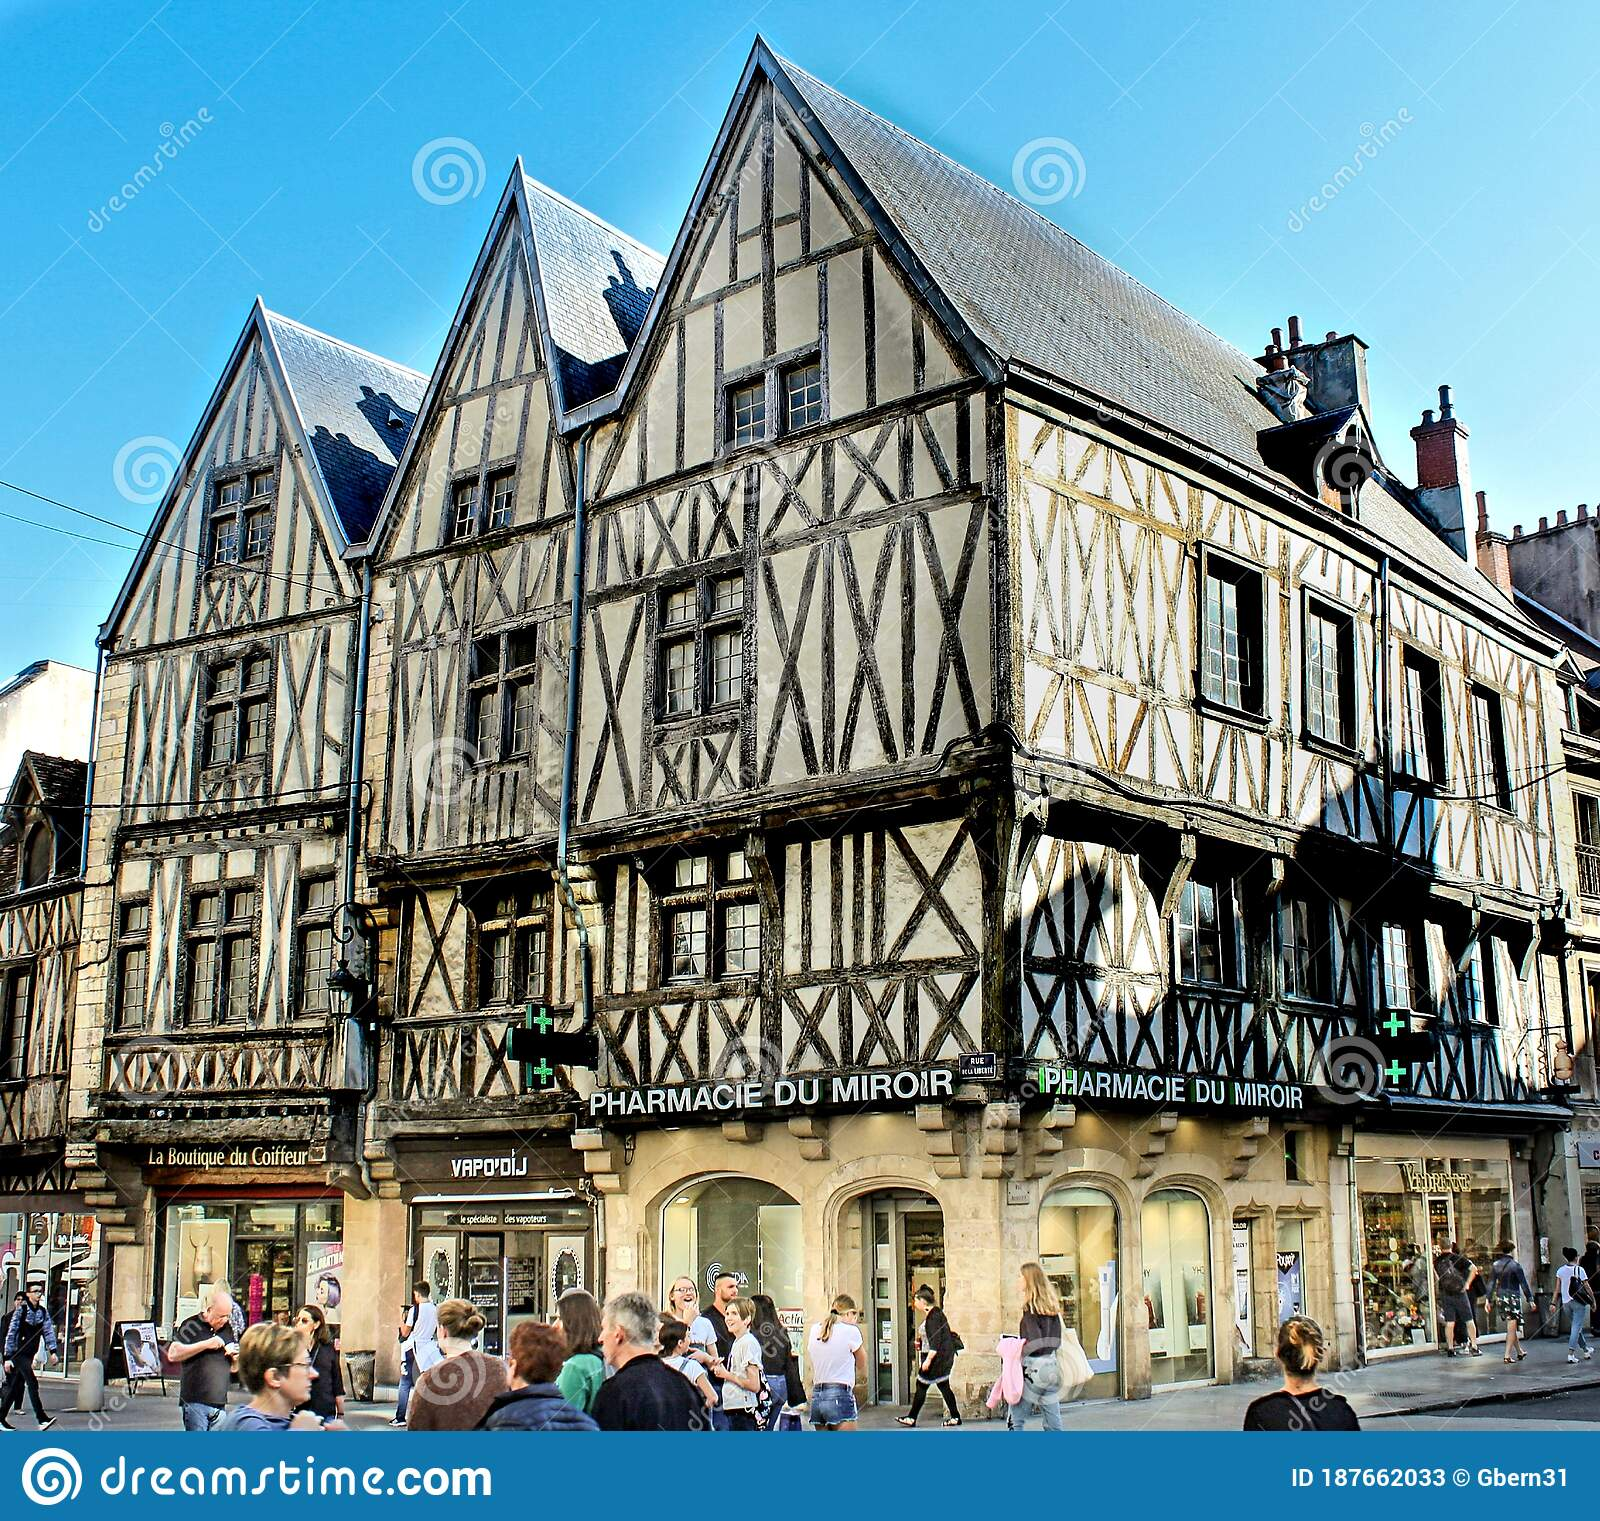 Dijon In France Lovely Streetview City Famous For Mustard Editorial Stock Photo Image Of France Boutique 187662033